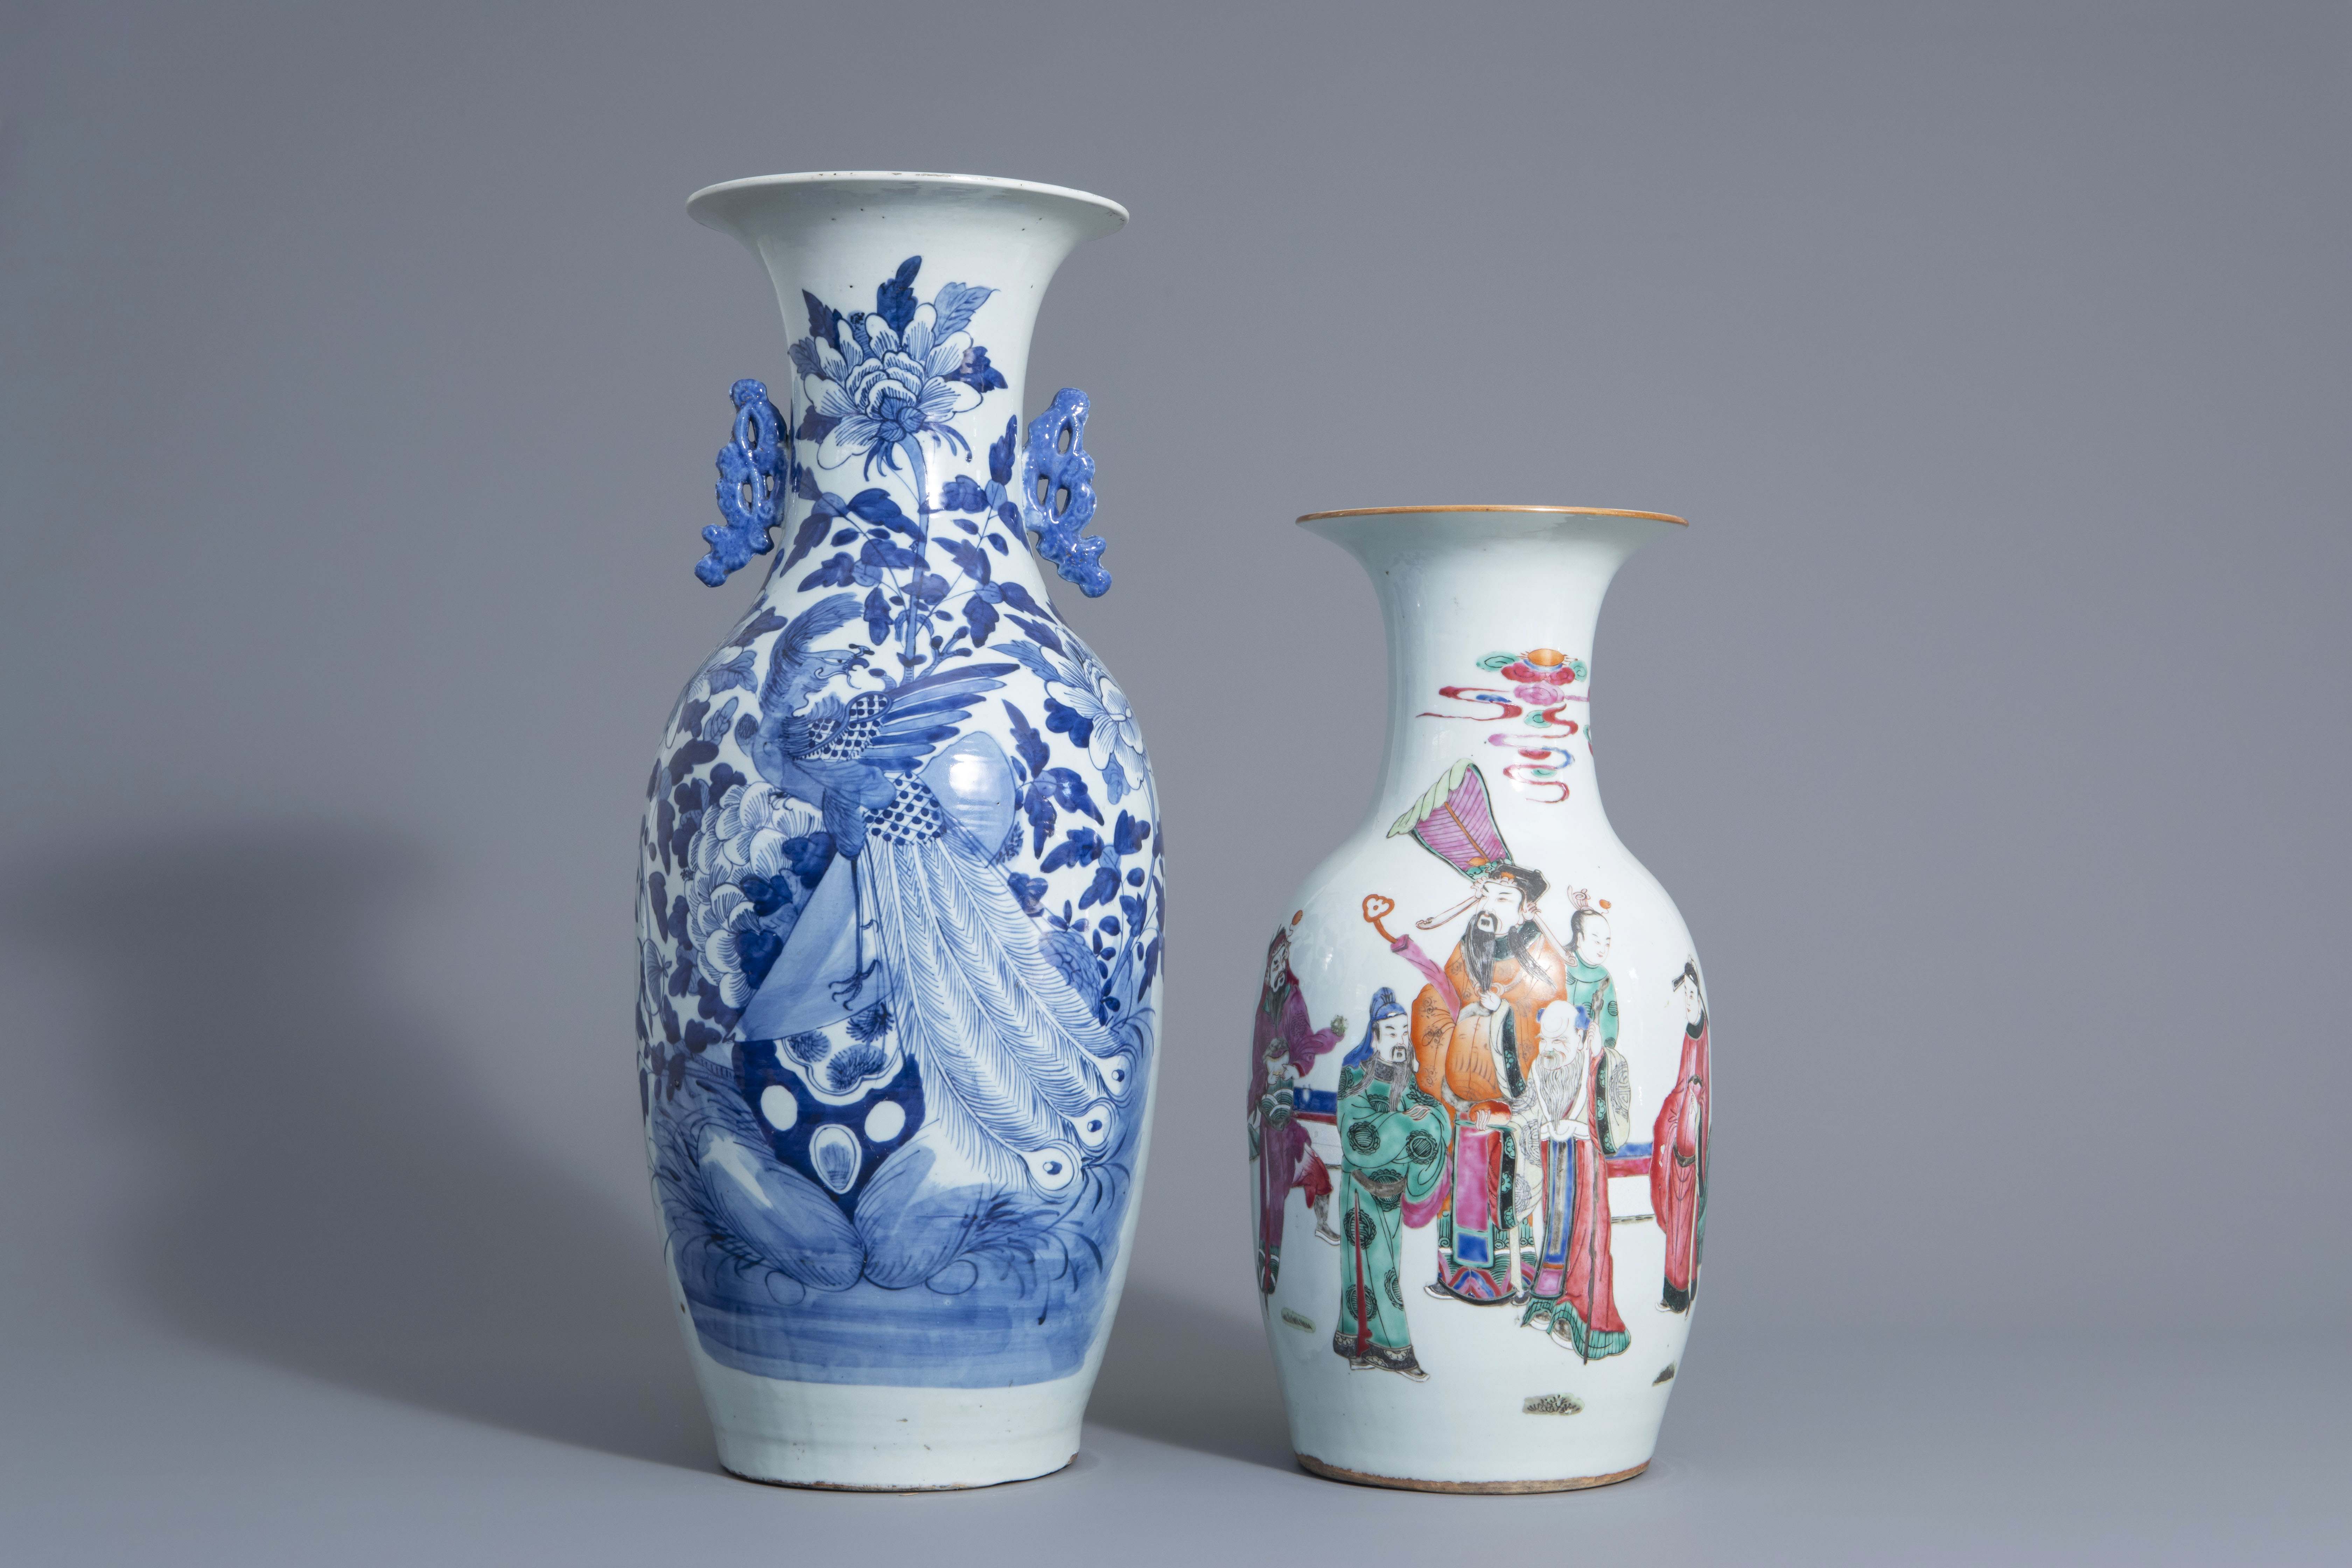 Two Chinese famille rose and blue and white vases with different designs, 19th/20th C.